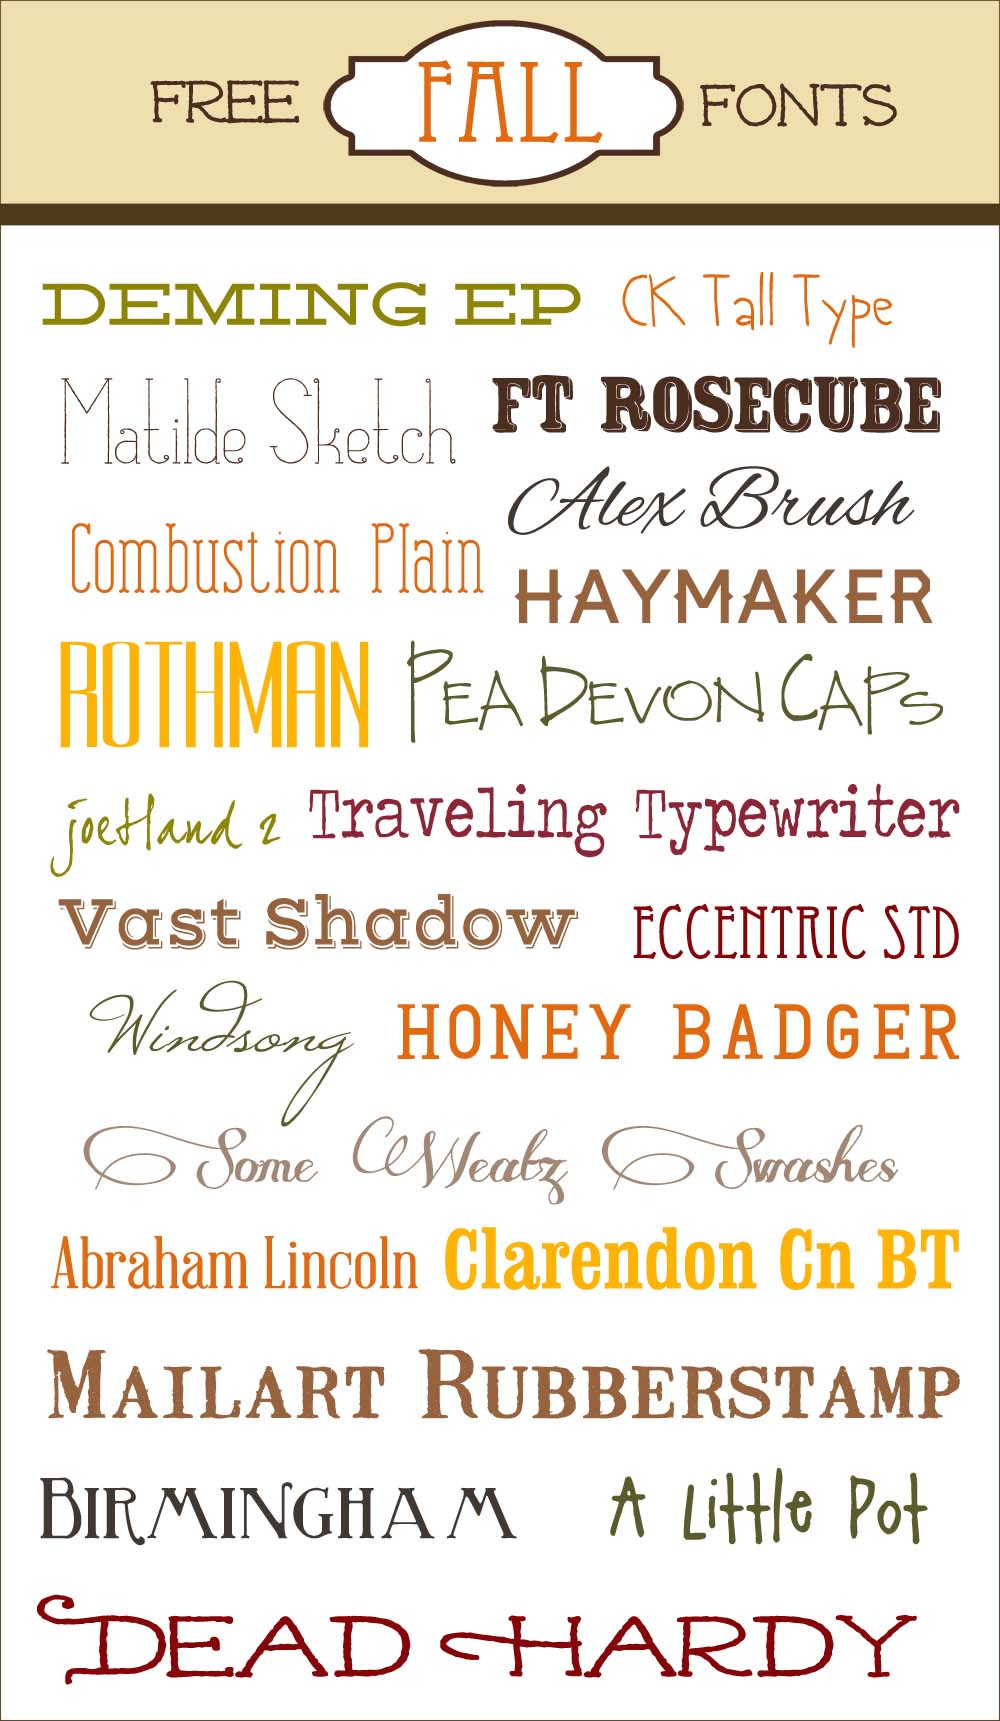 Free Fall Fonts with links to the individual download sites and also instruction